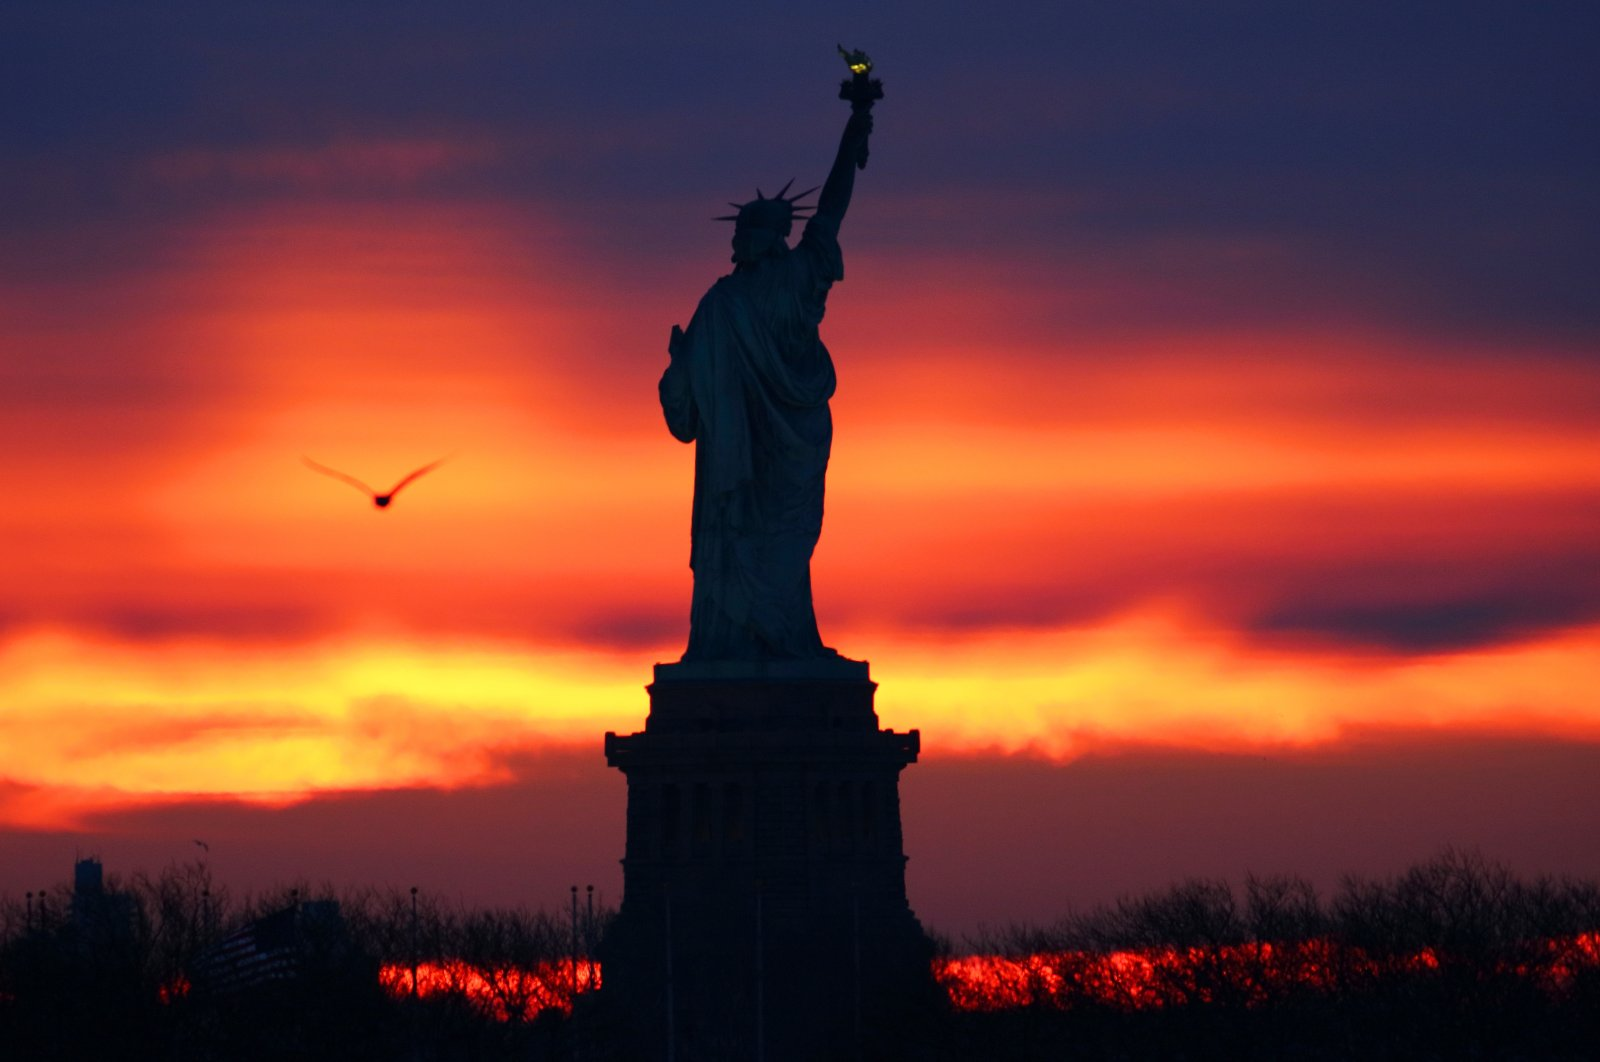 The sun rises behind the Statue of Liberty in New York City as seen from Jersey City, New Jersey, the U.S., Feb. 6, 2021. (Photo by Getty Images)